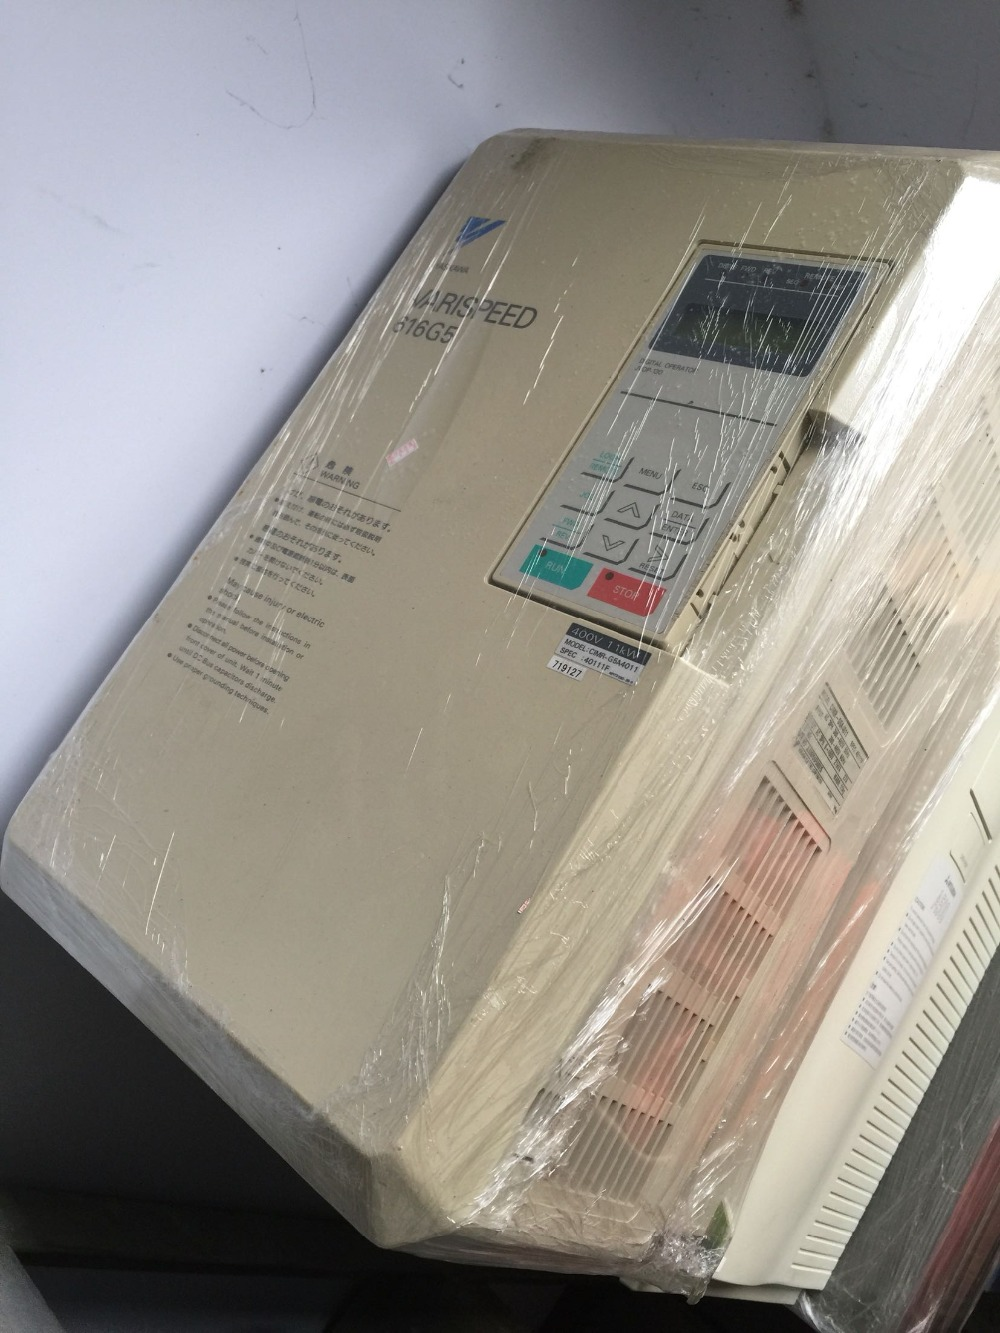 CIMR-V7SU41P5   used in good condition